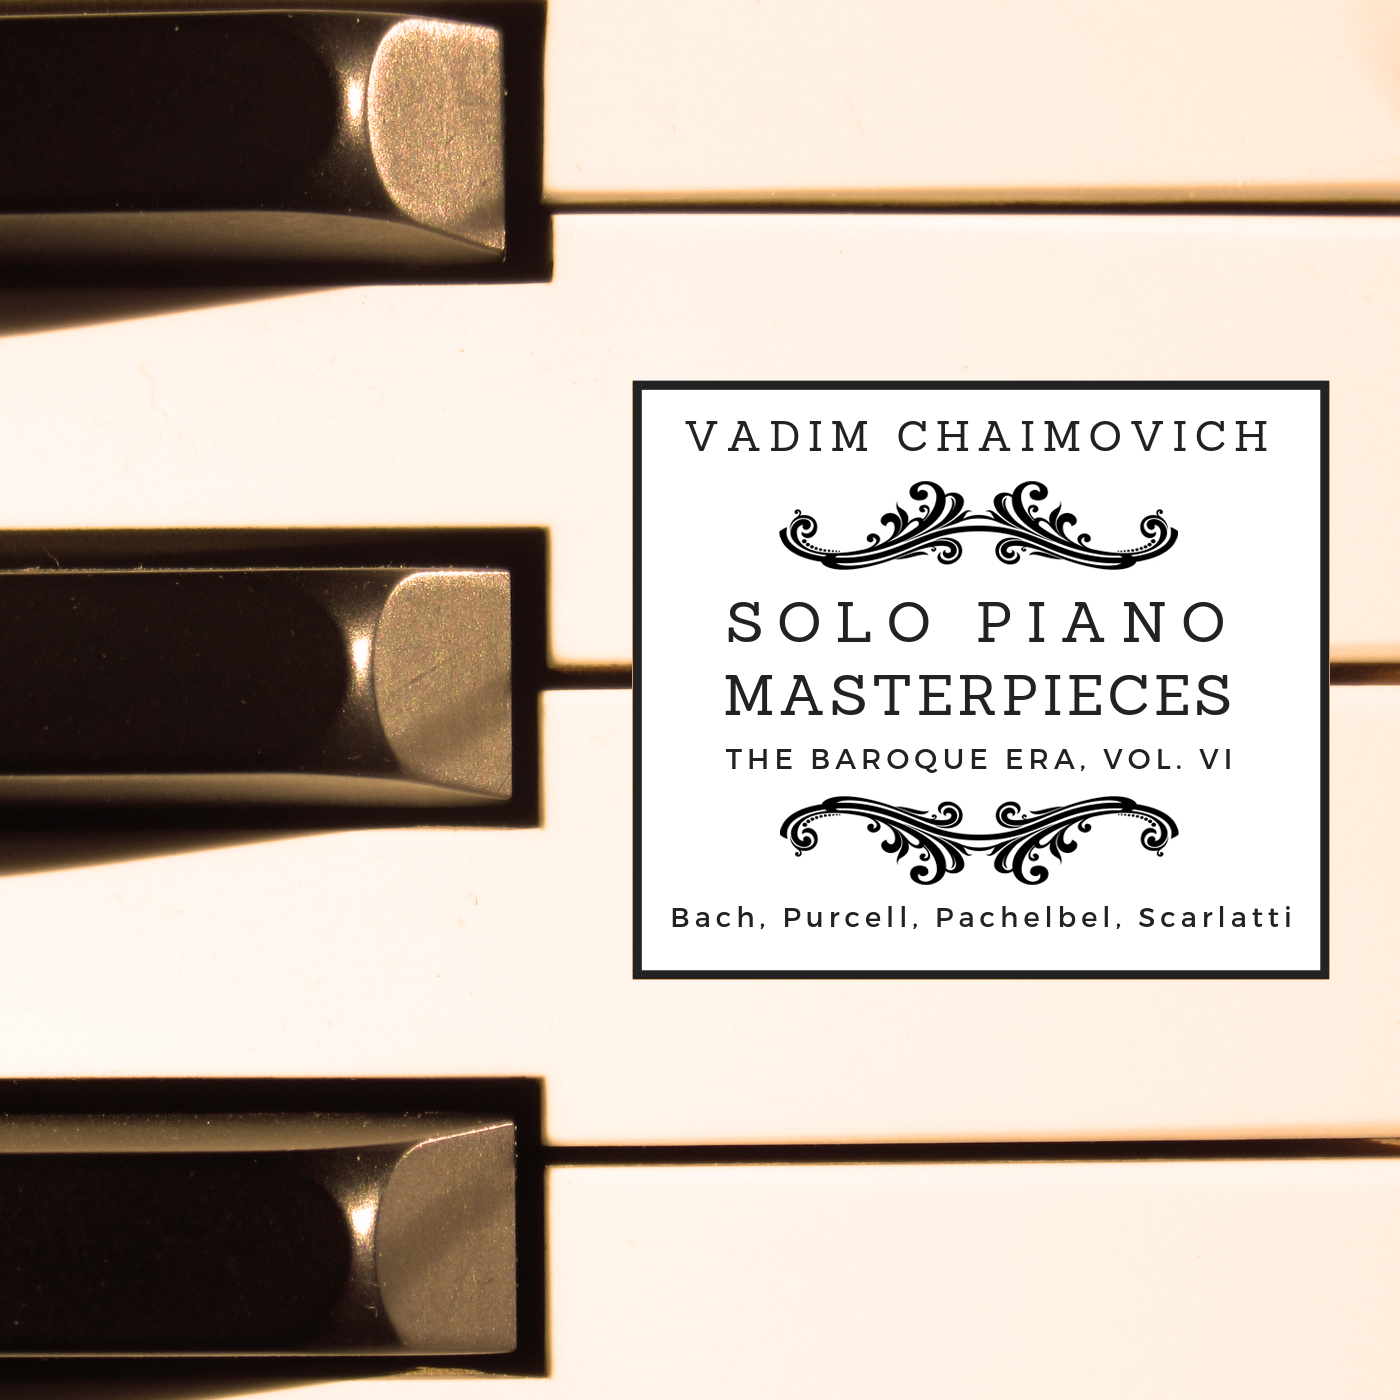 Solo Piano Masterpieces: The Baroque Era, Vol. VI